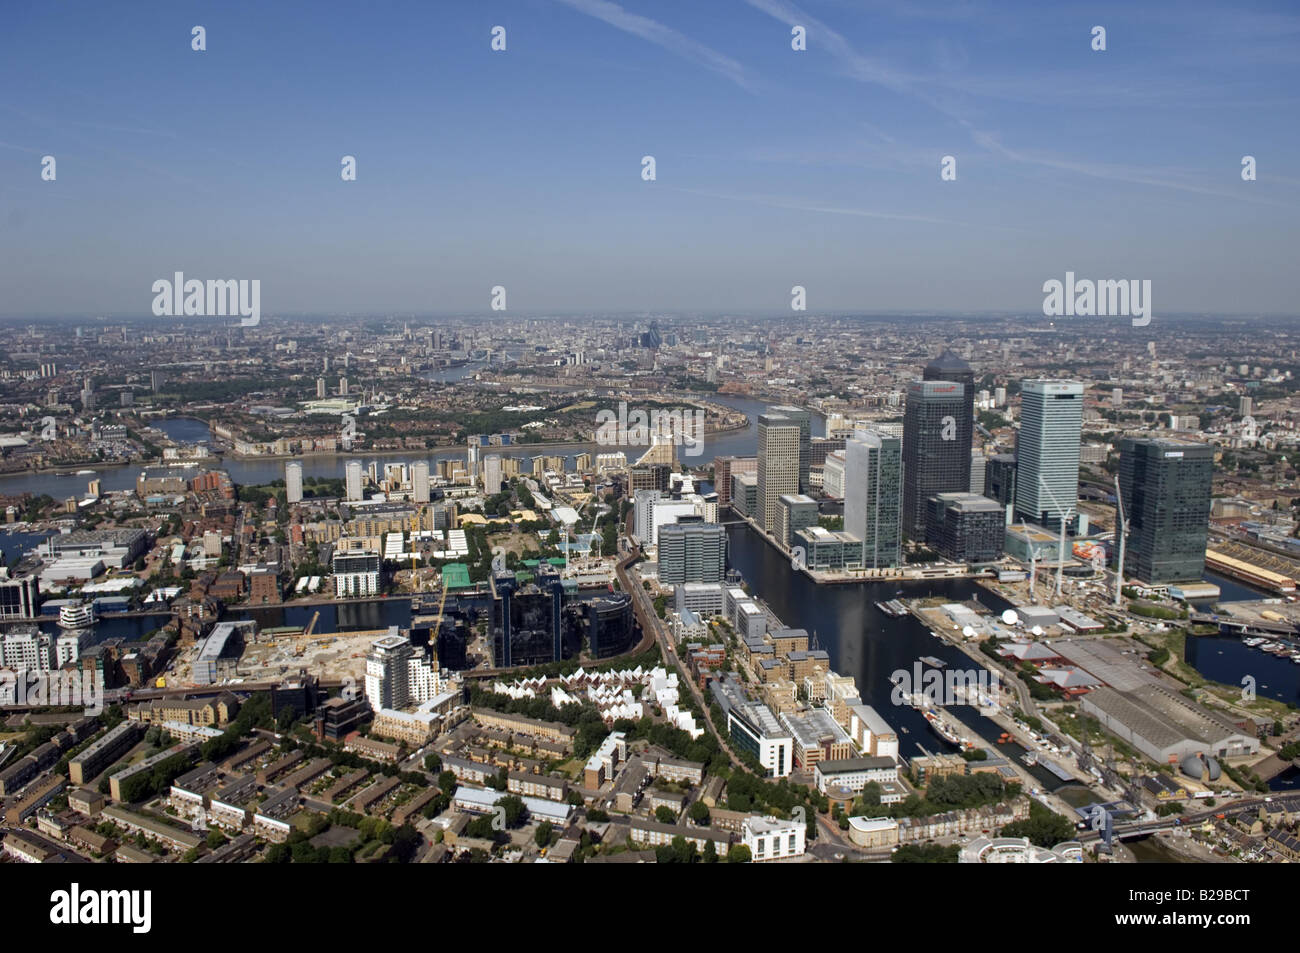 The Isle of Dogs Date 12 03 2008 Ref ZB648 111149 0057 COMPULSORY CREDIT World Pictures Photoshot - Stock Image